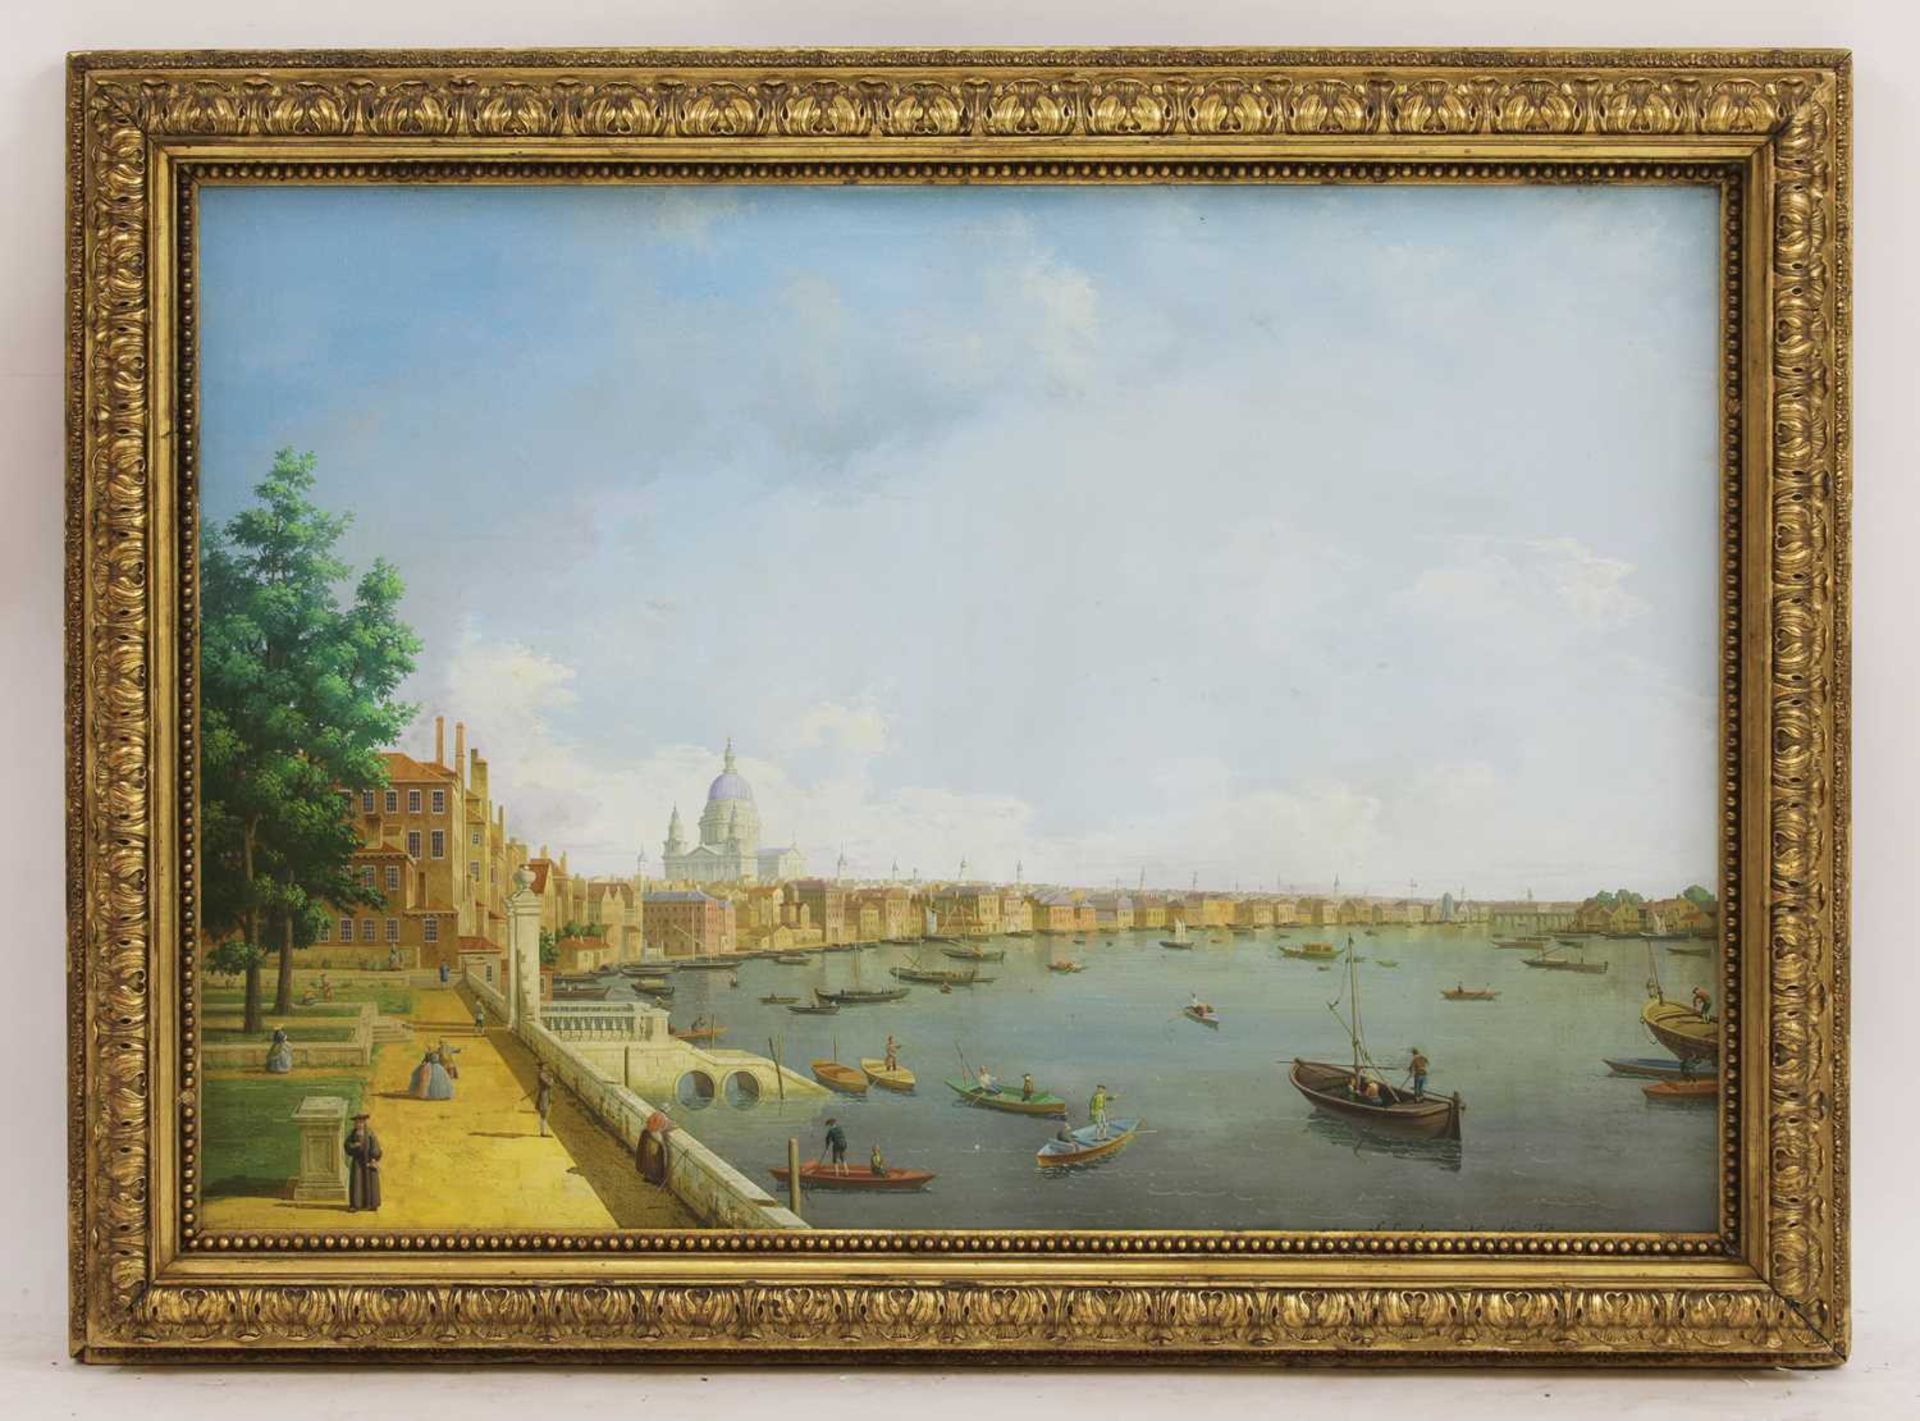 AFTER GIOVANNI ANTONIA CANAL, CALLED CANALETTO (ITALIAN 1697-1768)